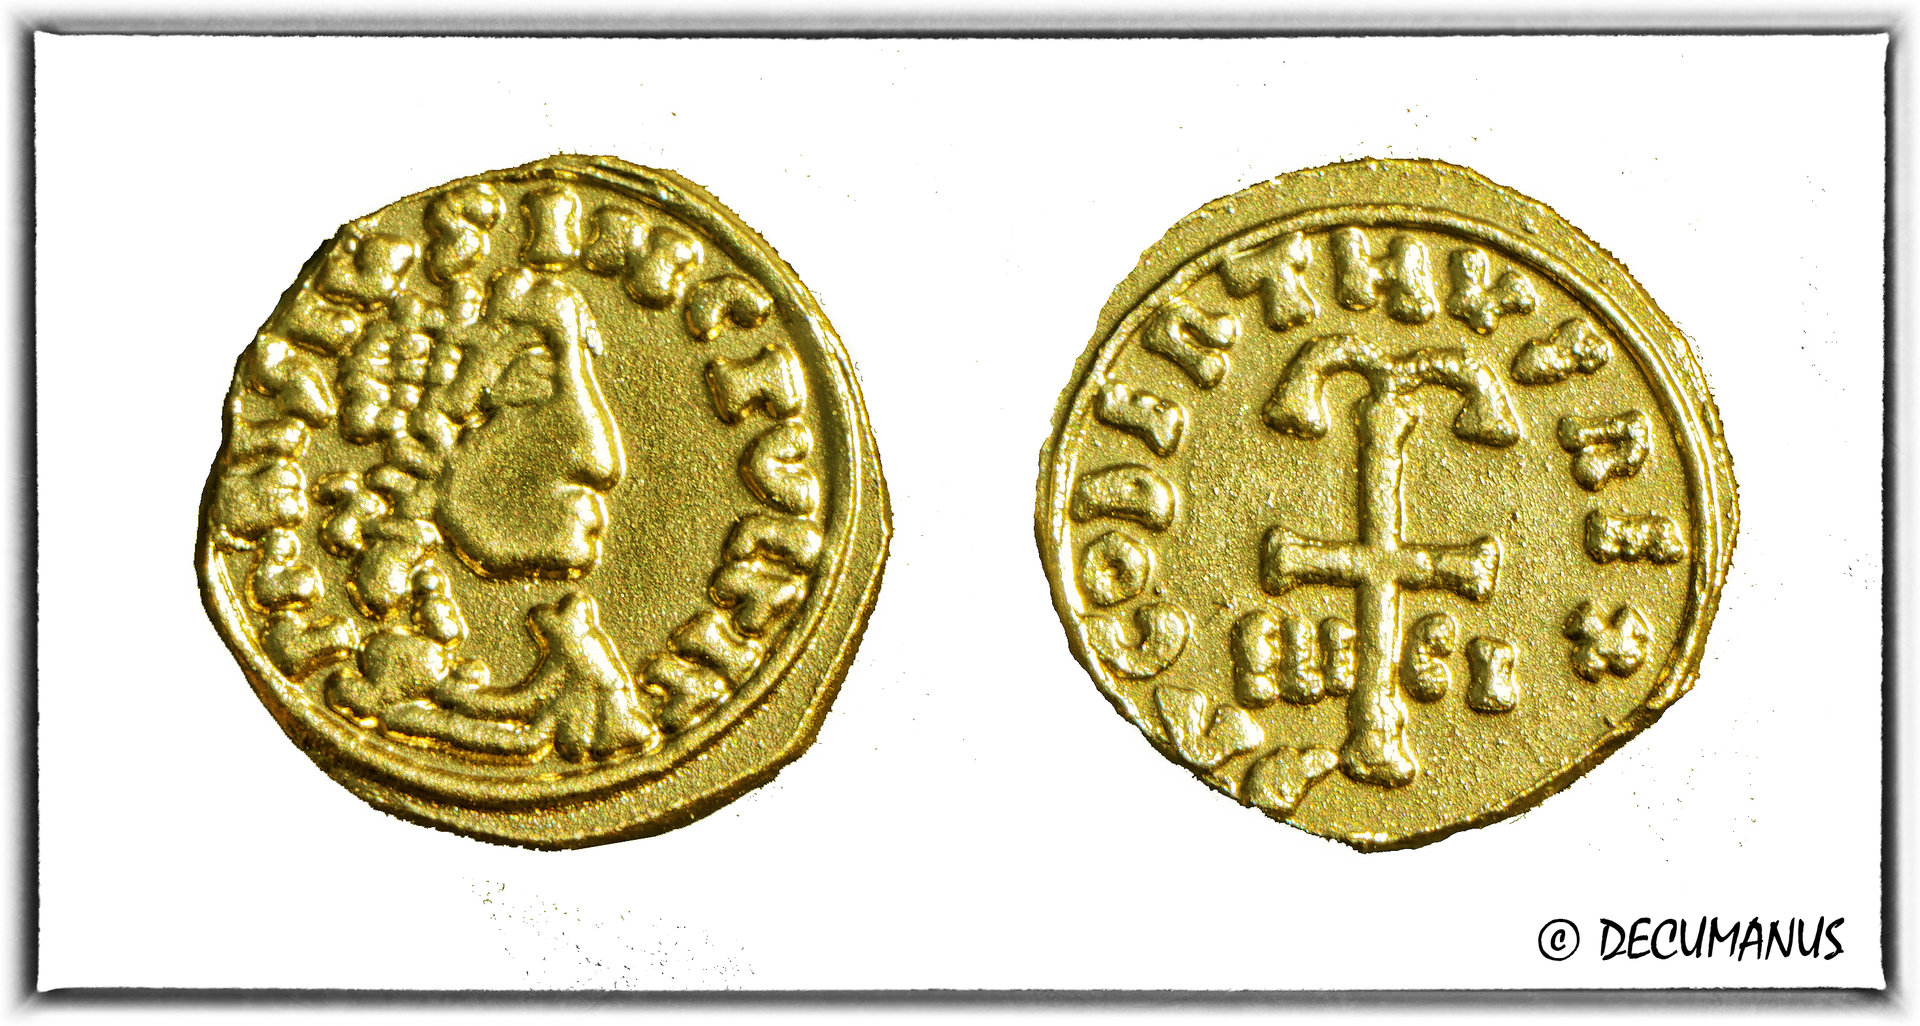 THIRD OF GOLDEN CURRENCY OF DAGOBERT IRST WITH THE ANCHORED CROSS - REPRODUCTION